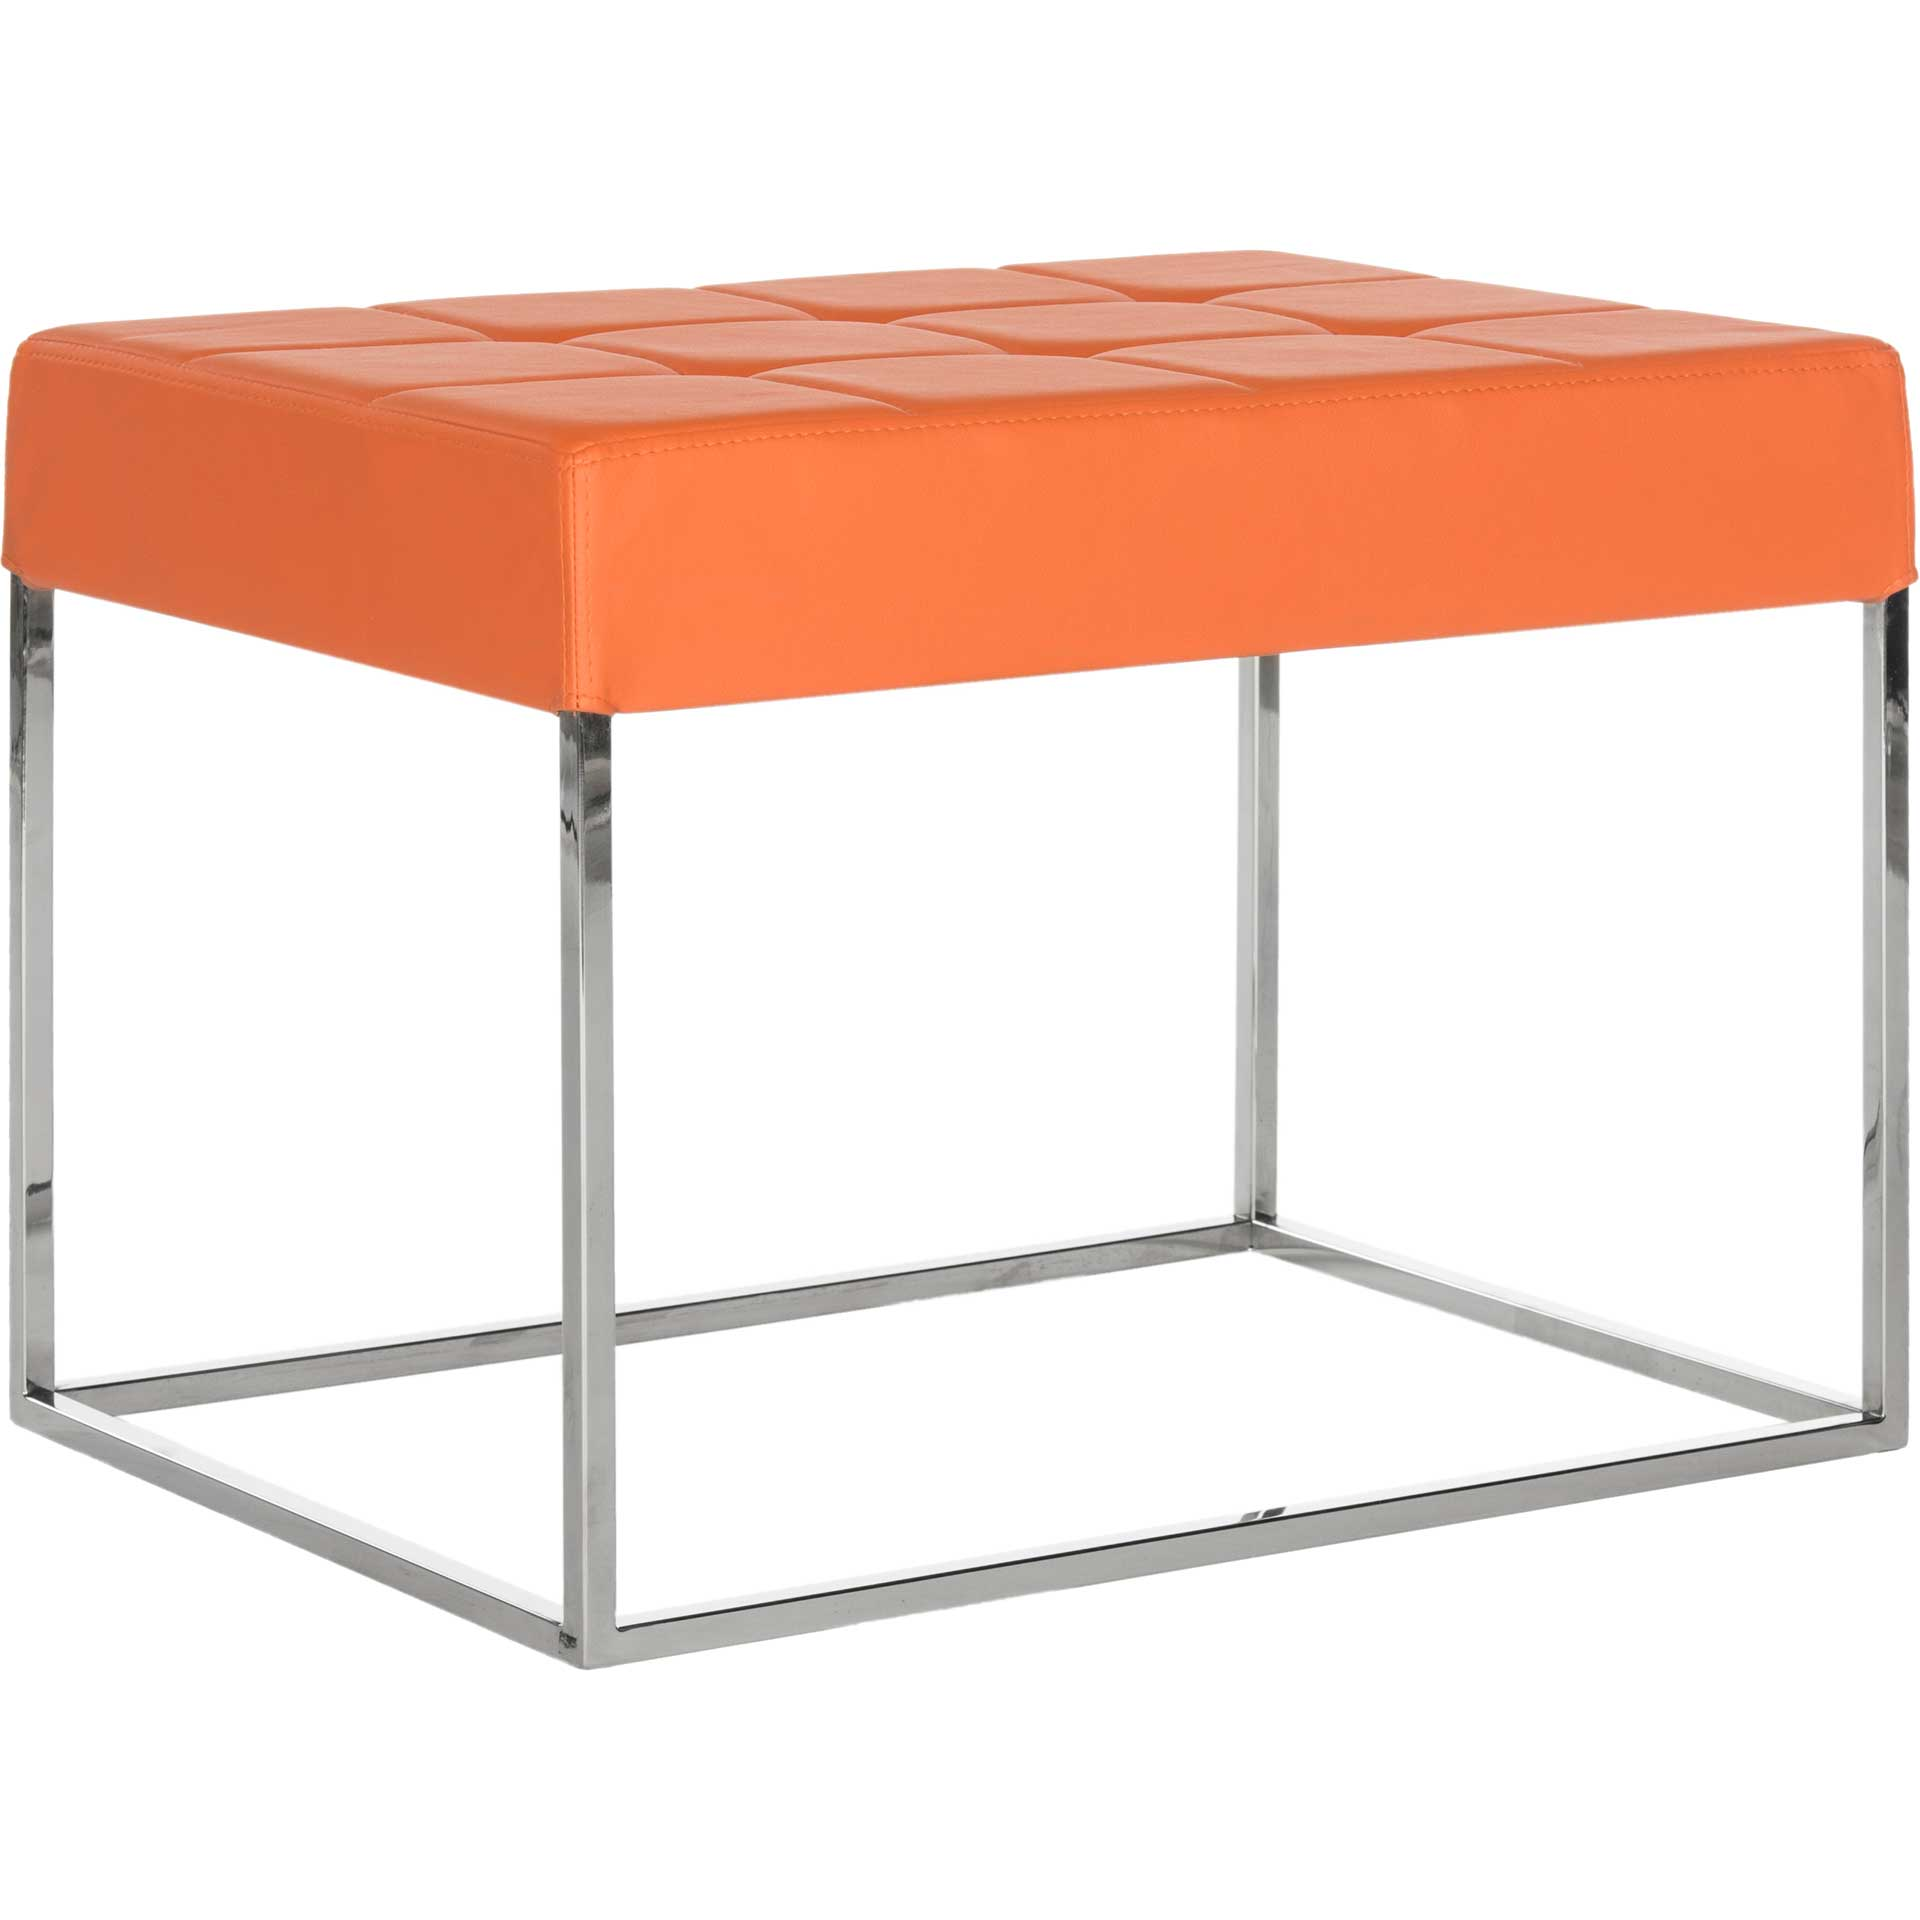 Roger Ottoman Orange/Chrome